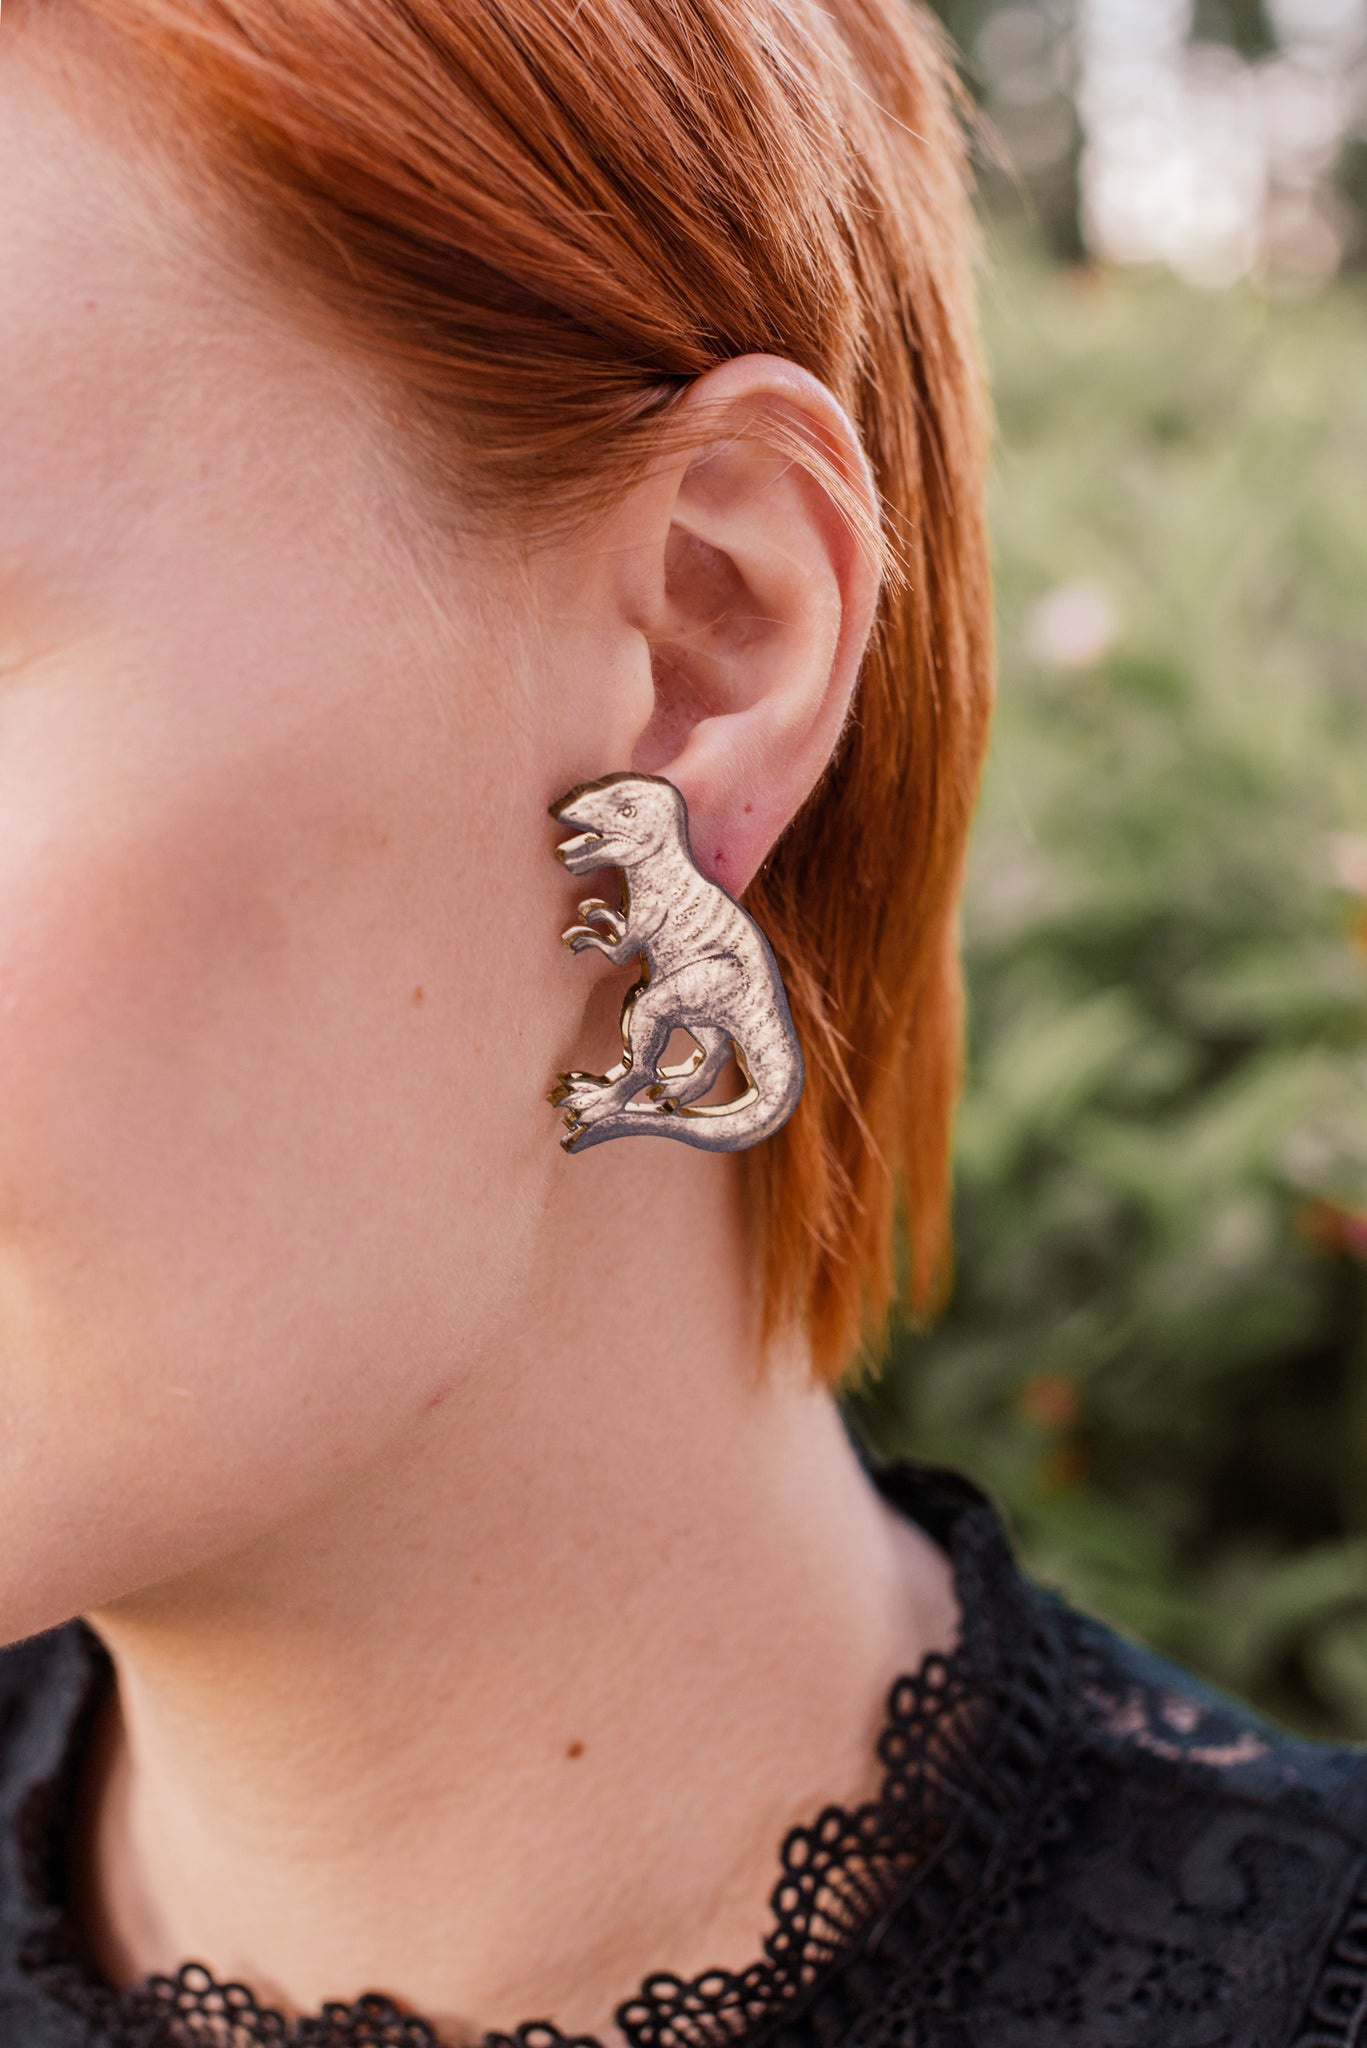 T-Rex Stud Earrings, Golden Color Mirror